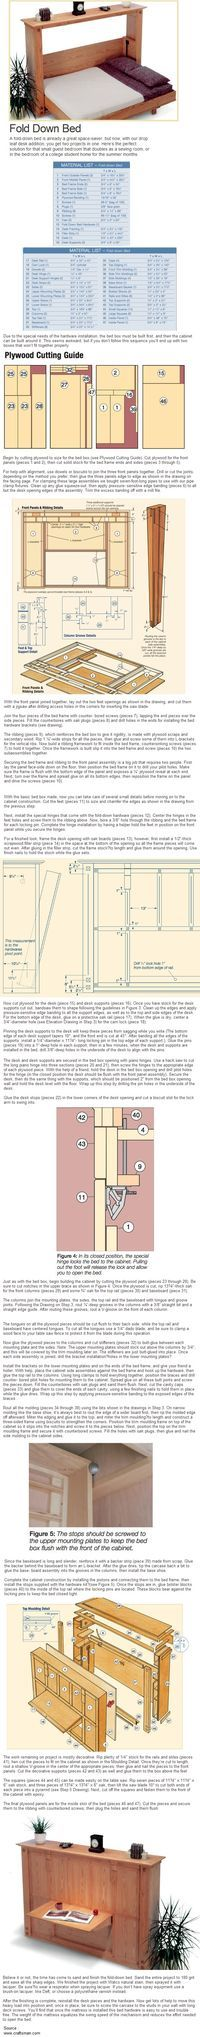 A guide for making a fold down bed. Make the most of tight spaces. Craftsman.com #1897